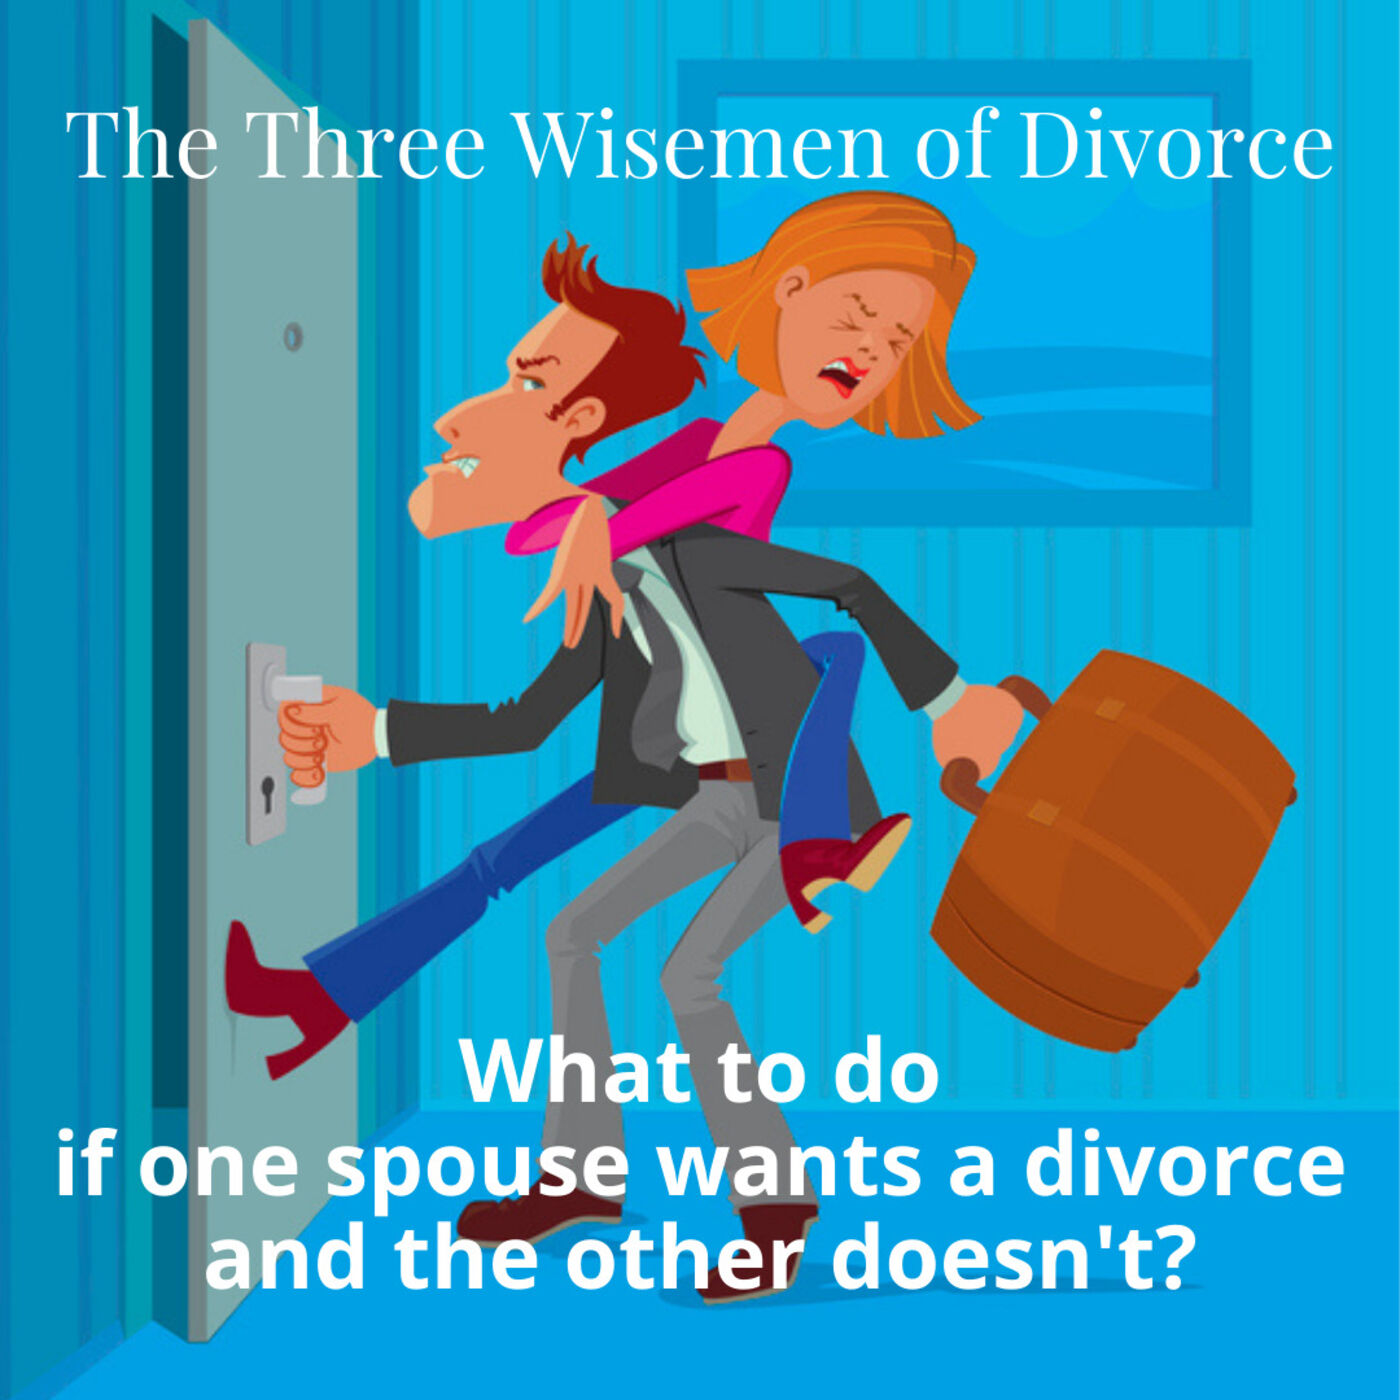 What to do if one spouse wants a divorce and the other doesn't